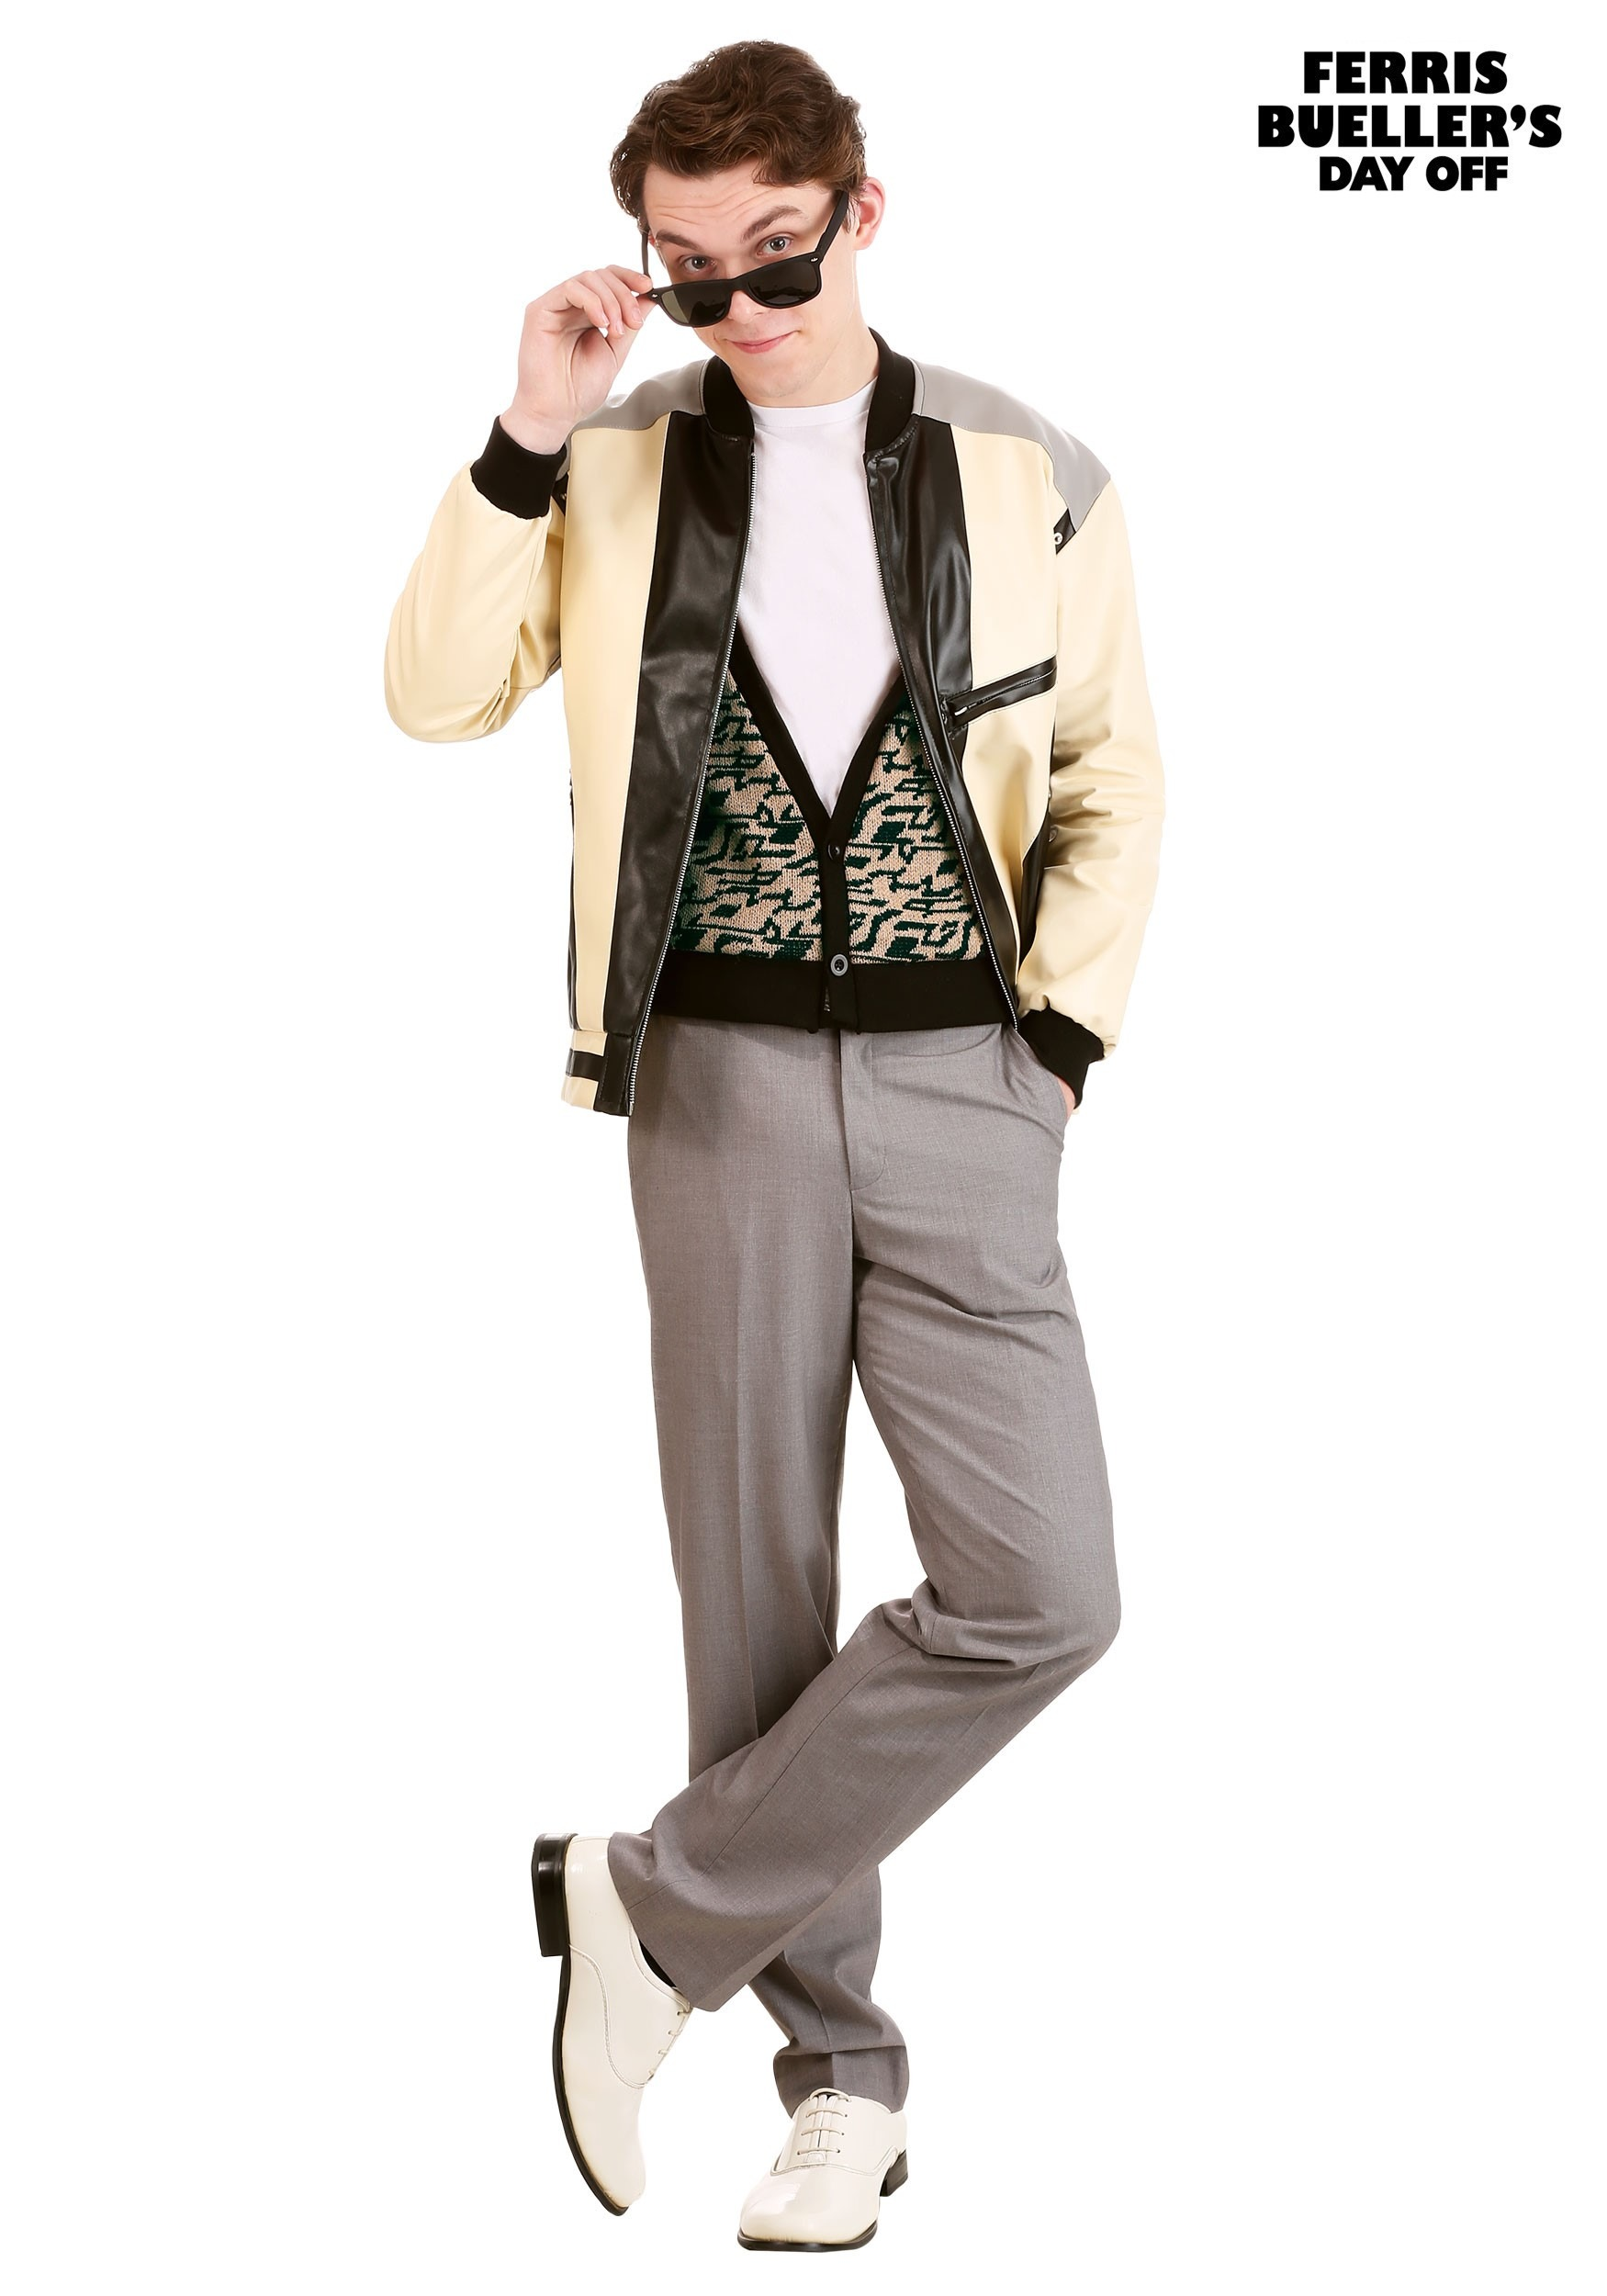 ferris bueller costume - Jimmy Page Halloween Costume